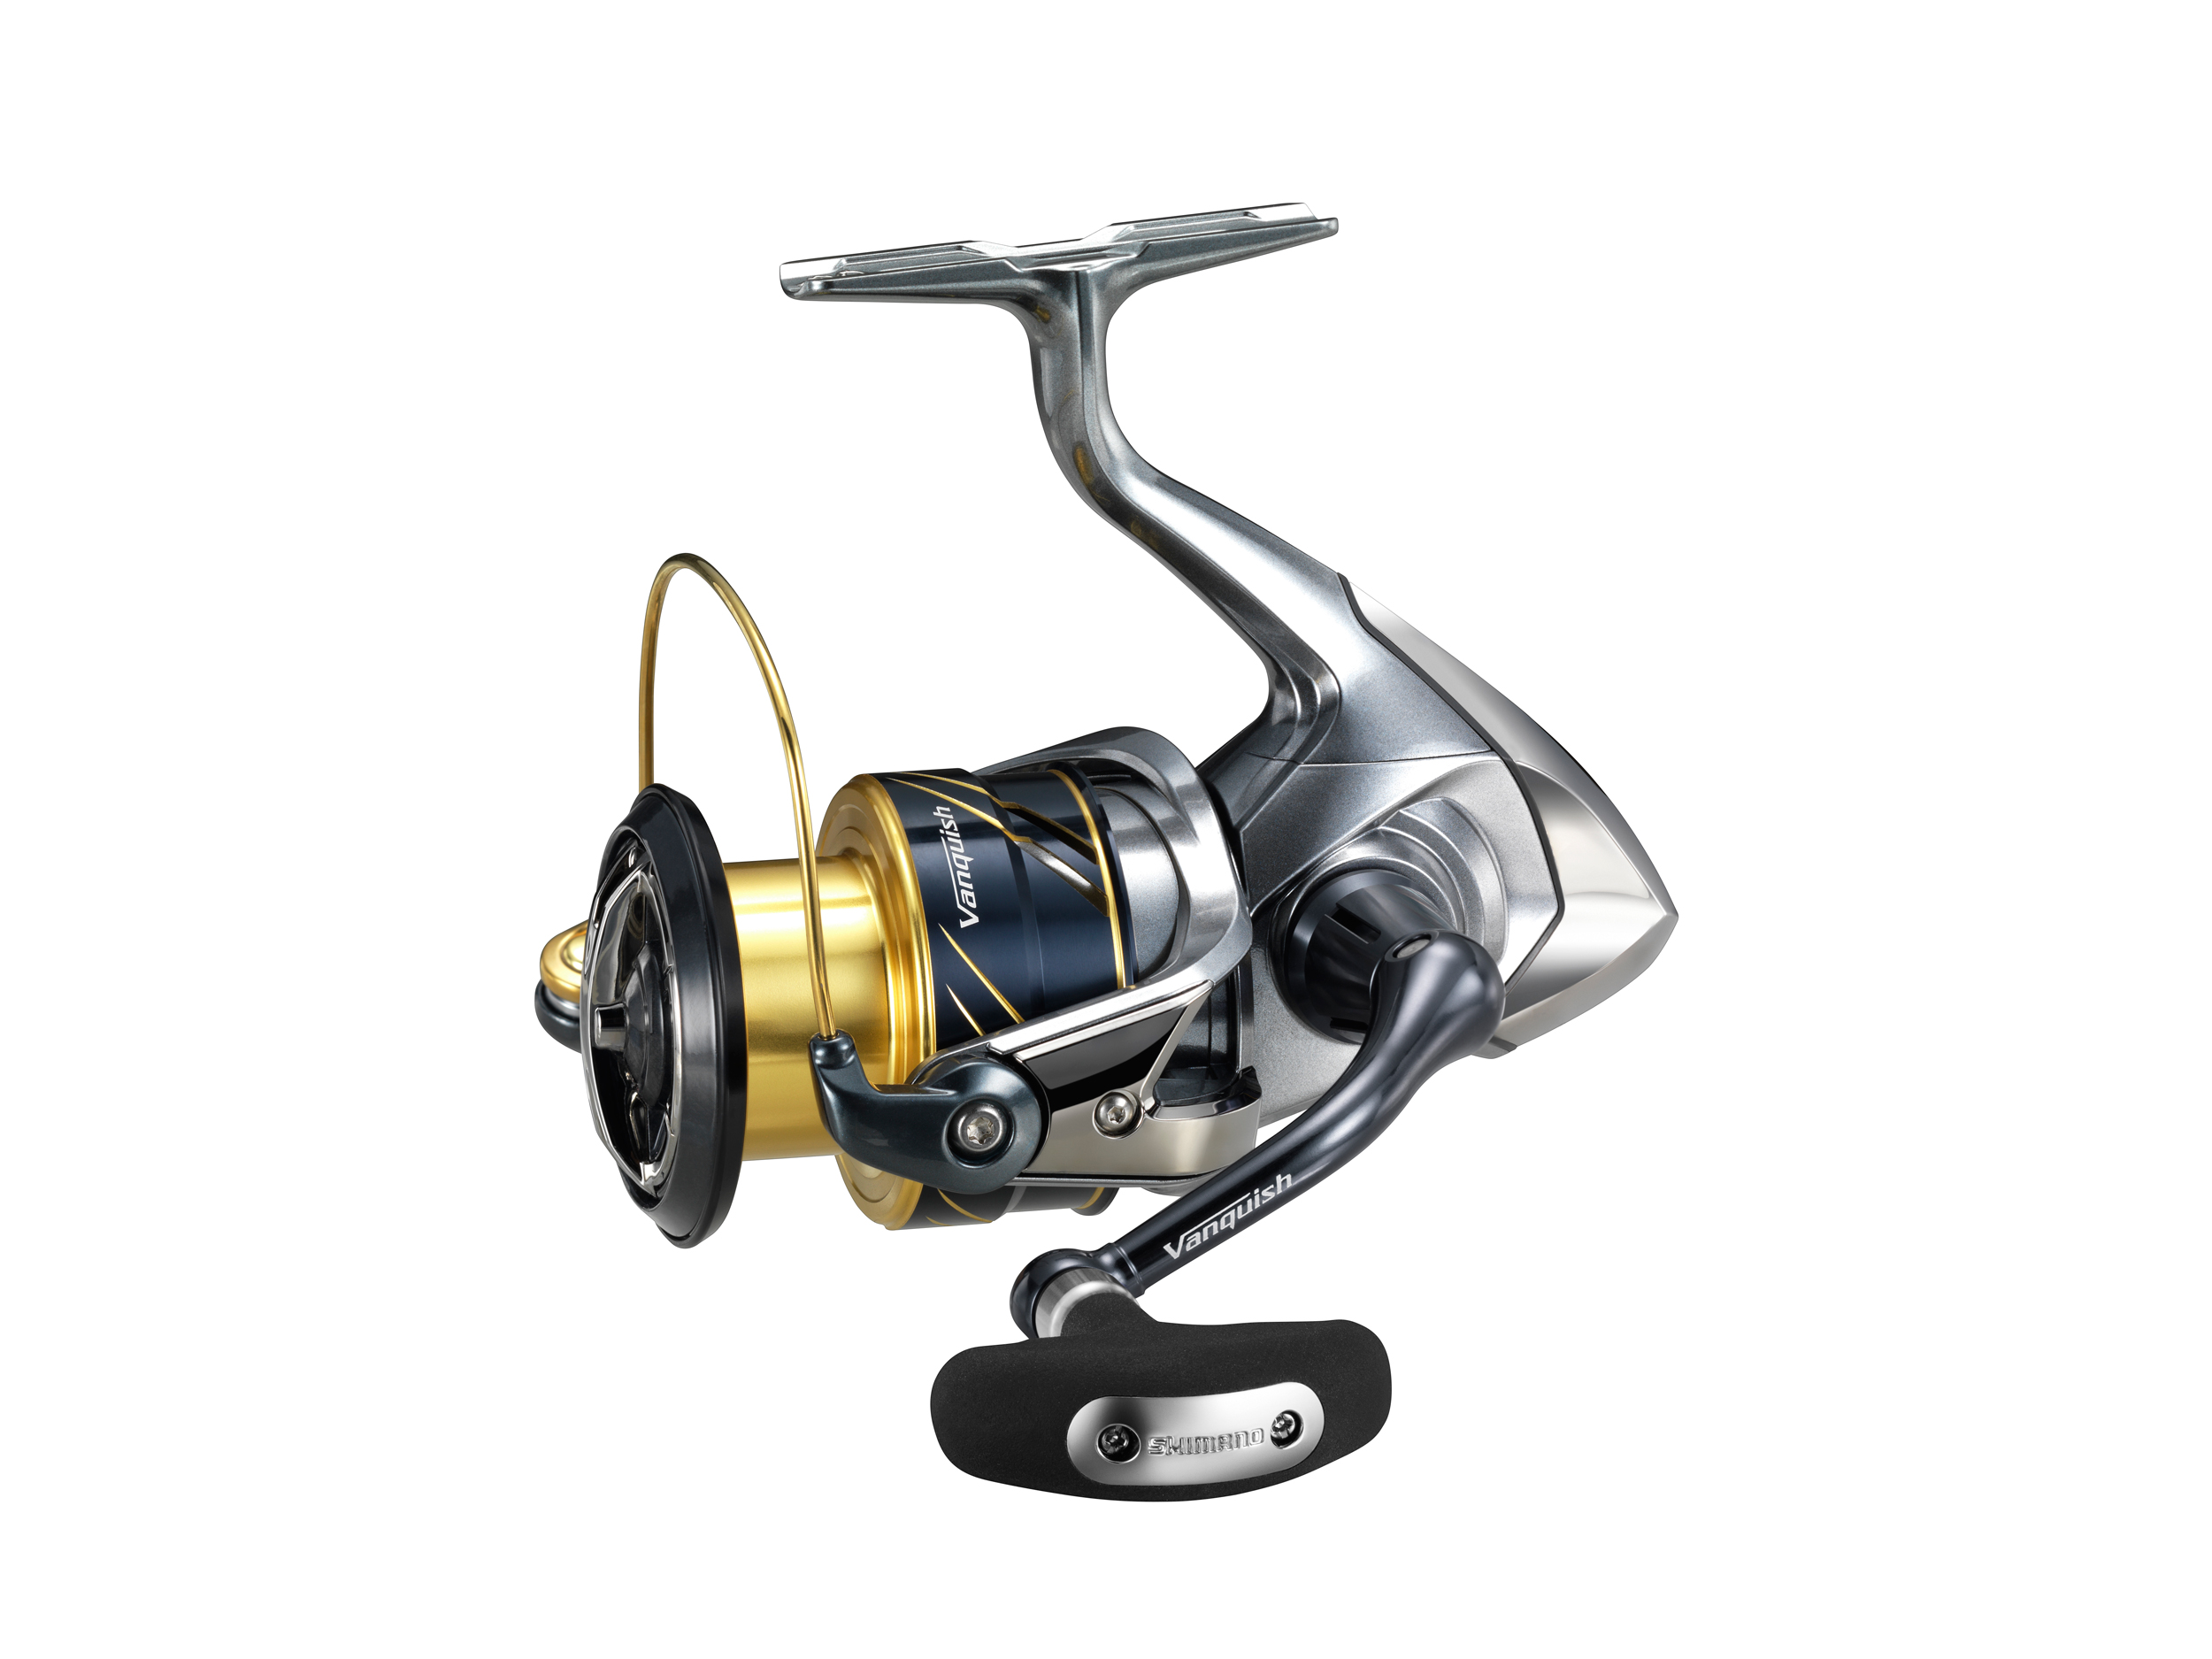 Shimano vanquish fa reels 4000hg c2000s spinning for Ebay fishing gear